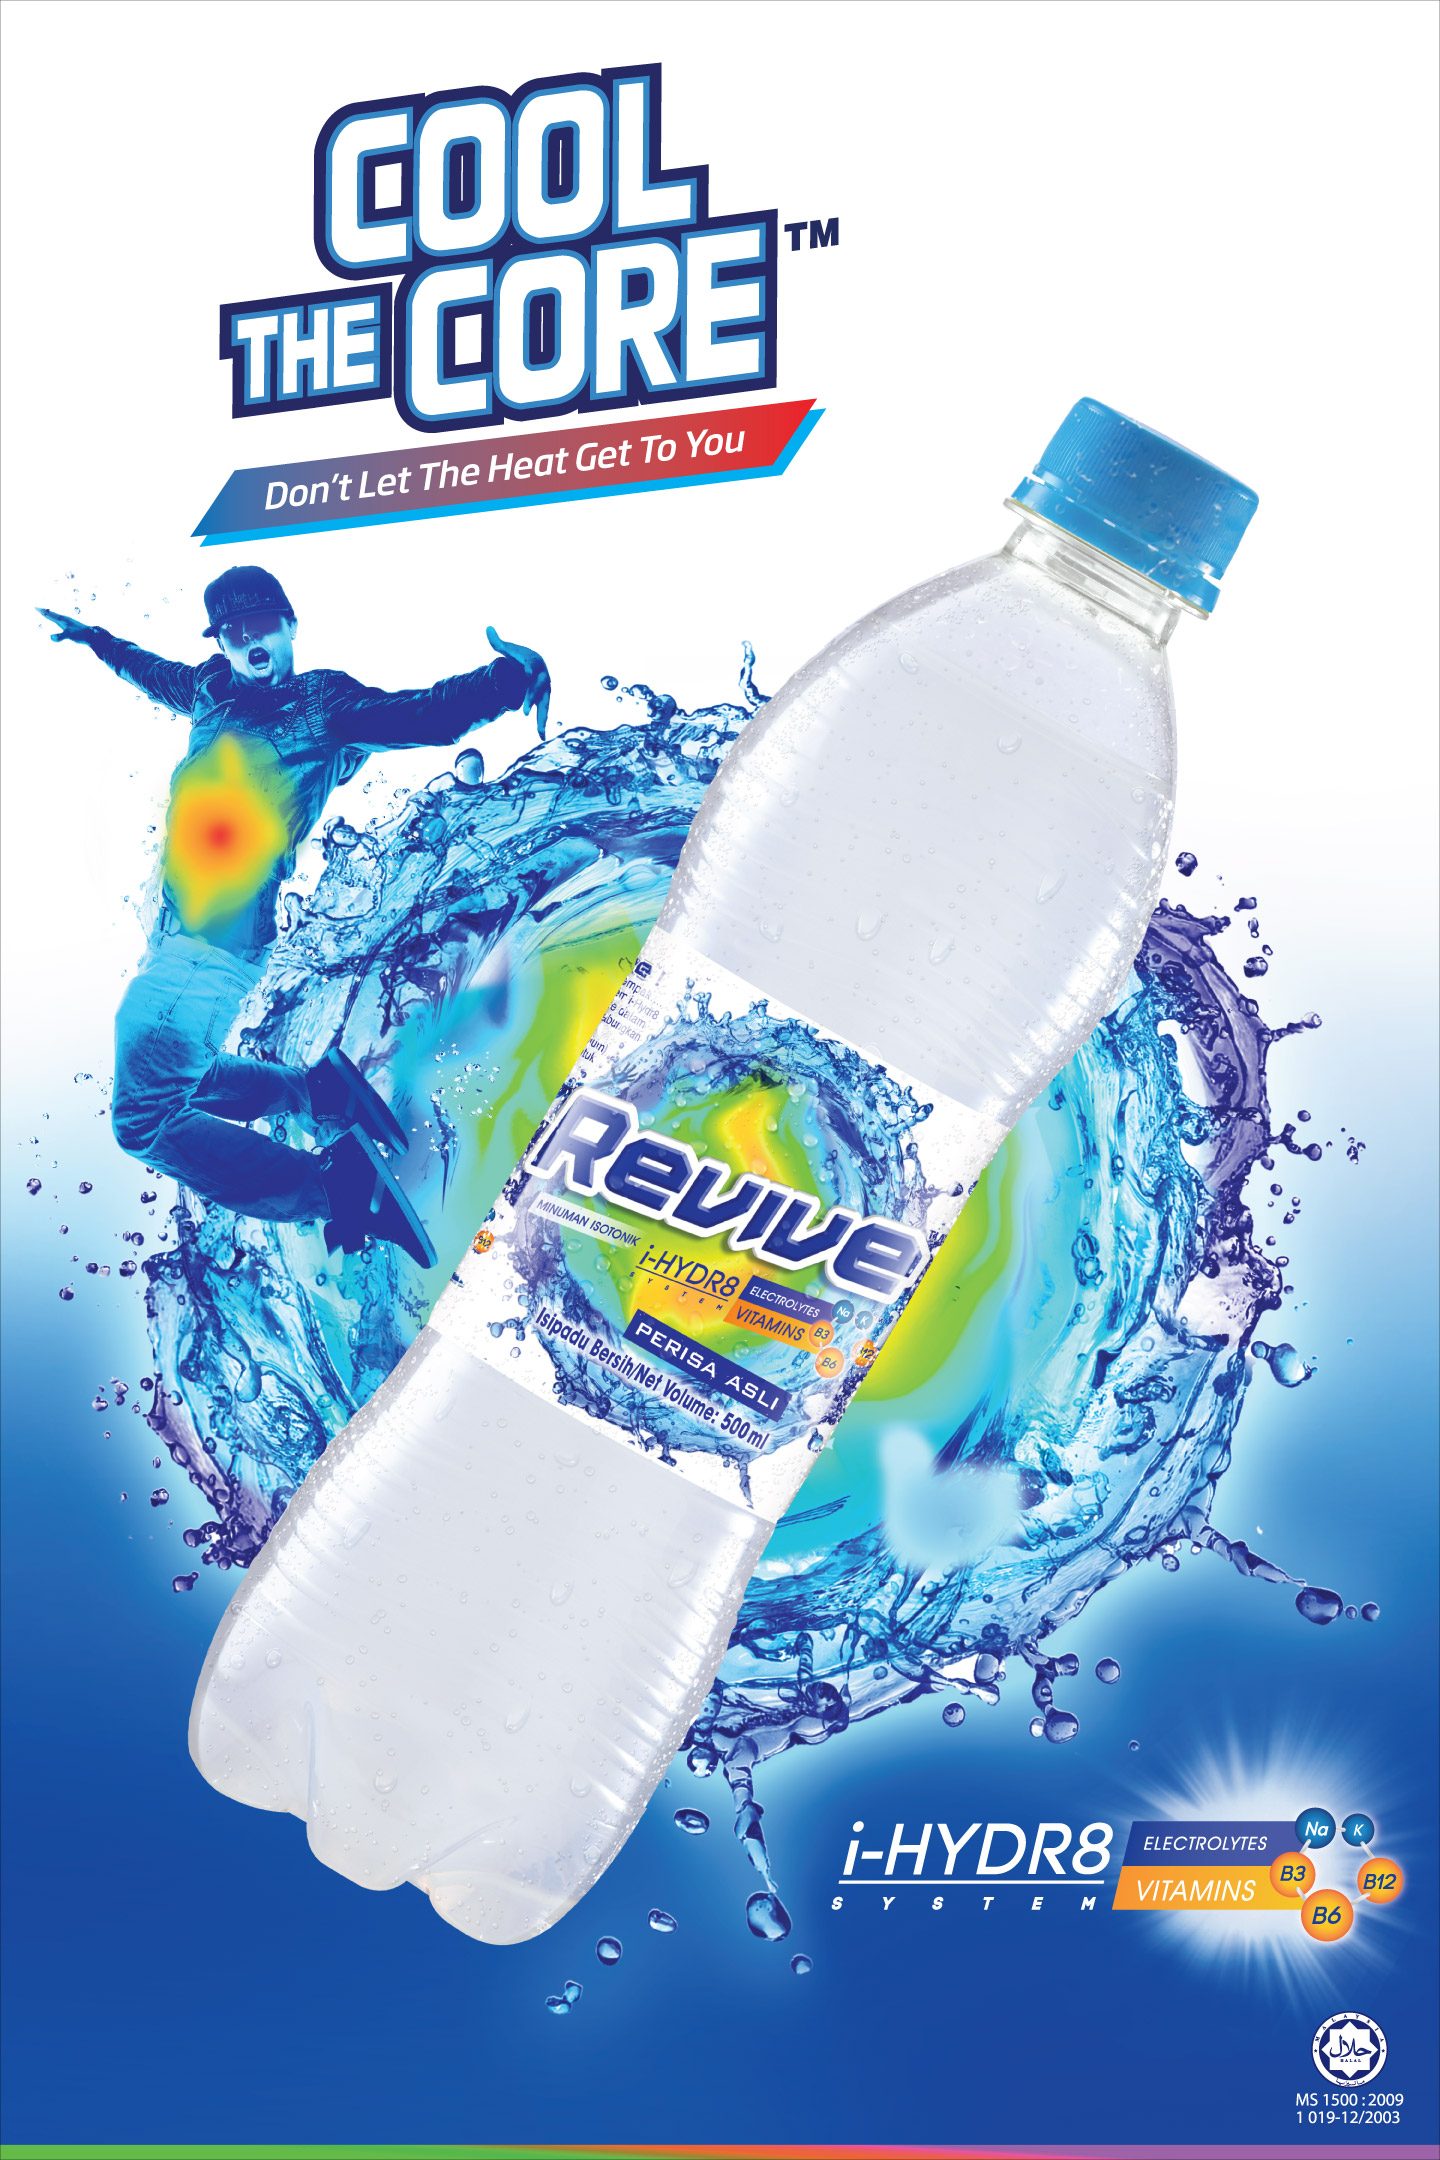 Image from Revive Isotonic